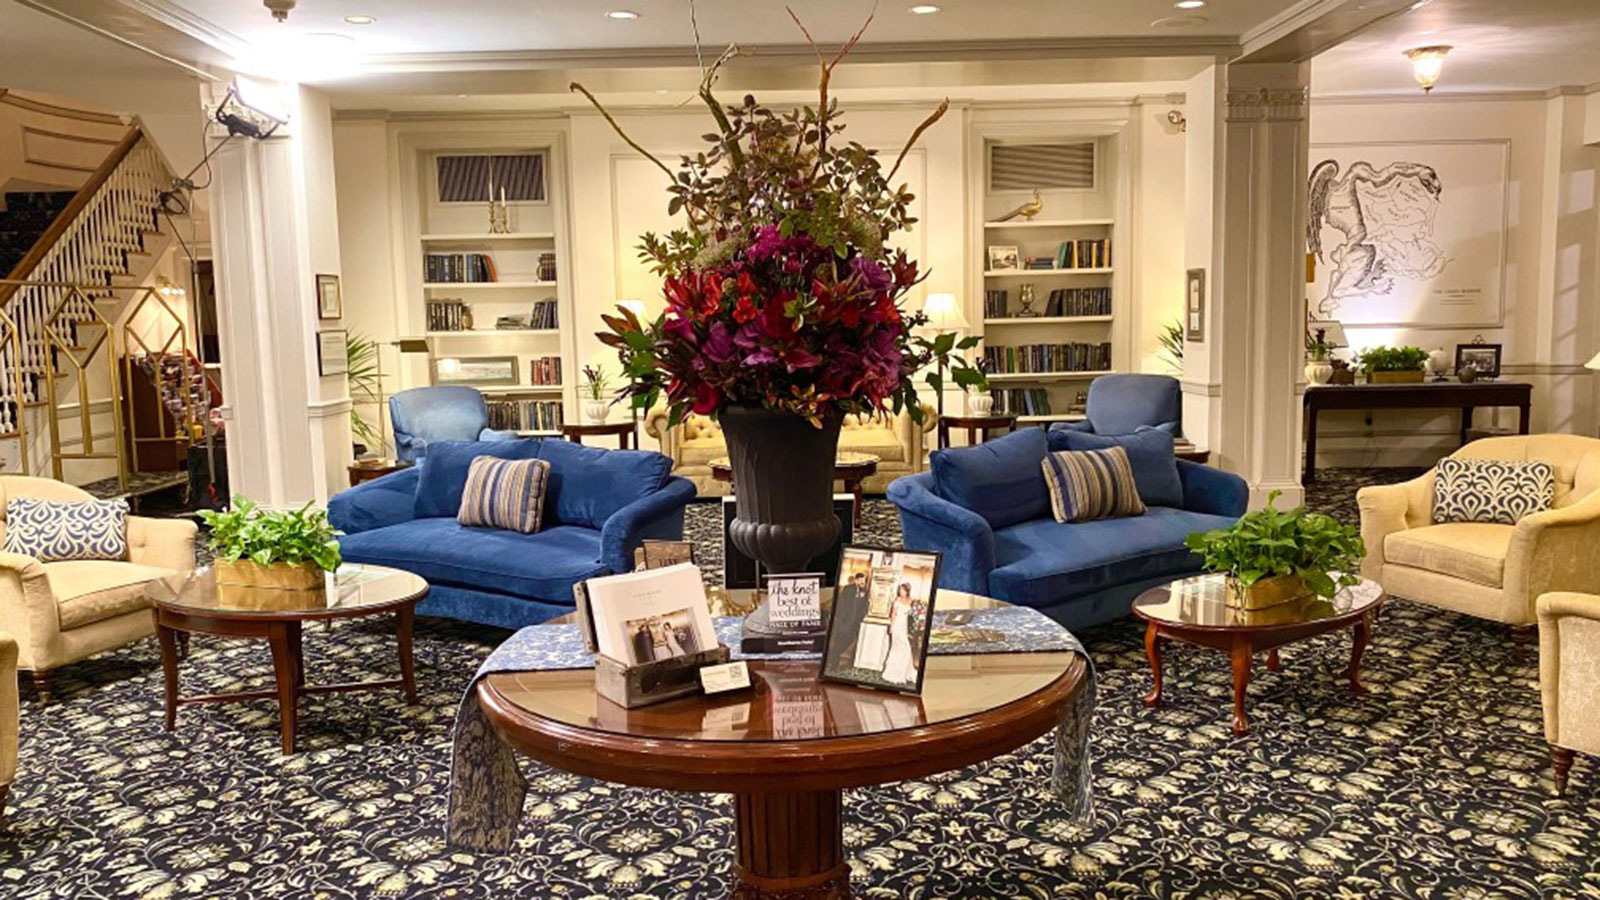 Image of lobby with flowers and plants Hawthorne Hotel, 1925, Member of Historic Hotels of America, in Salem, Massachusetts, Explore